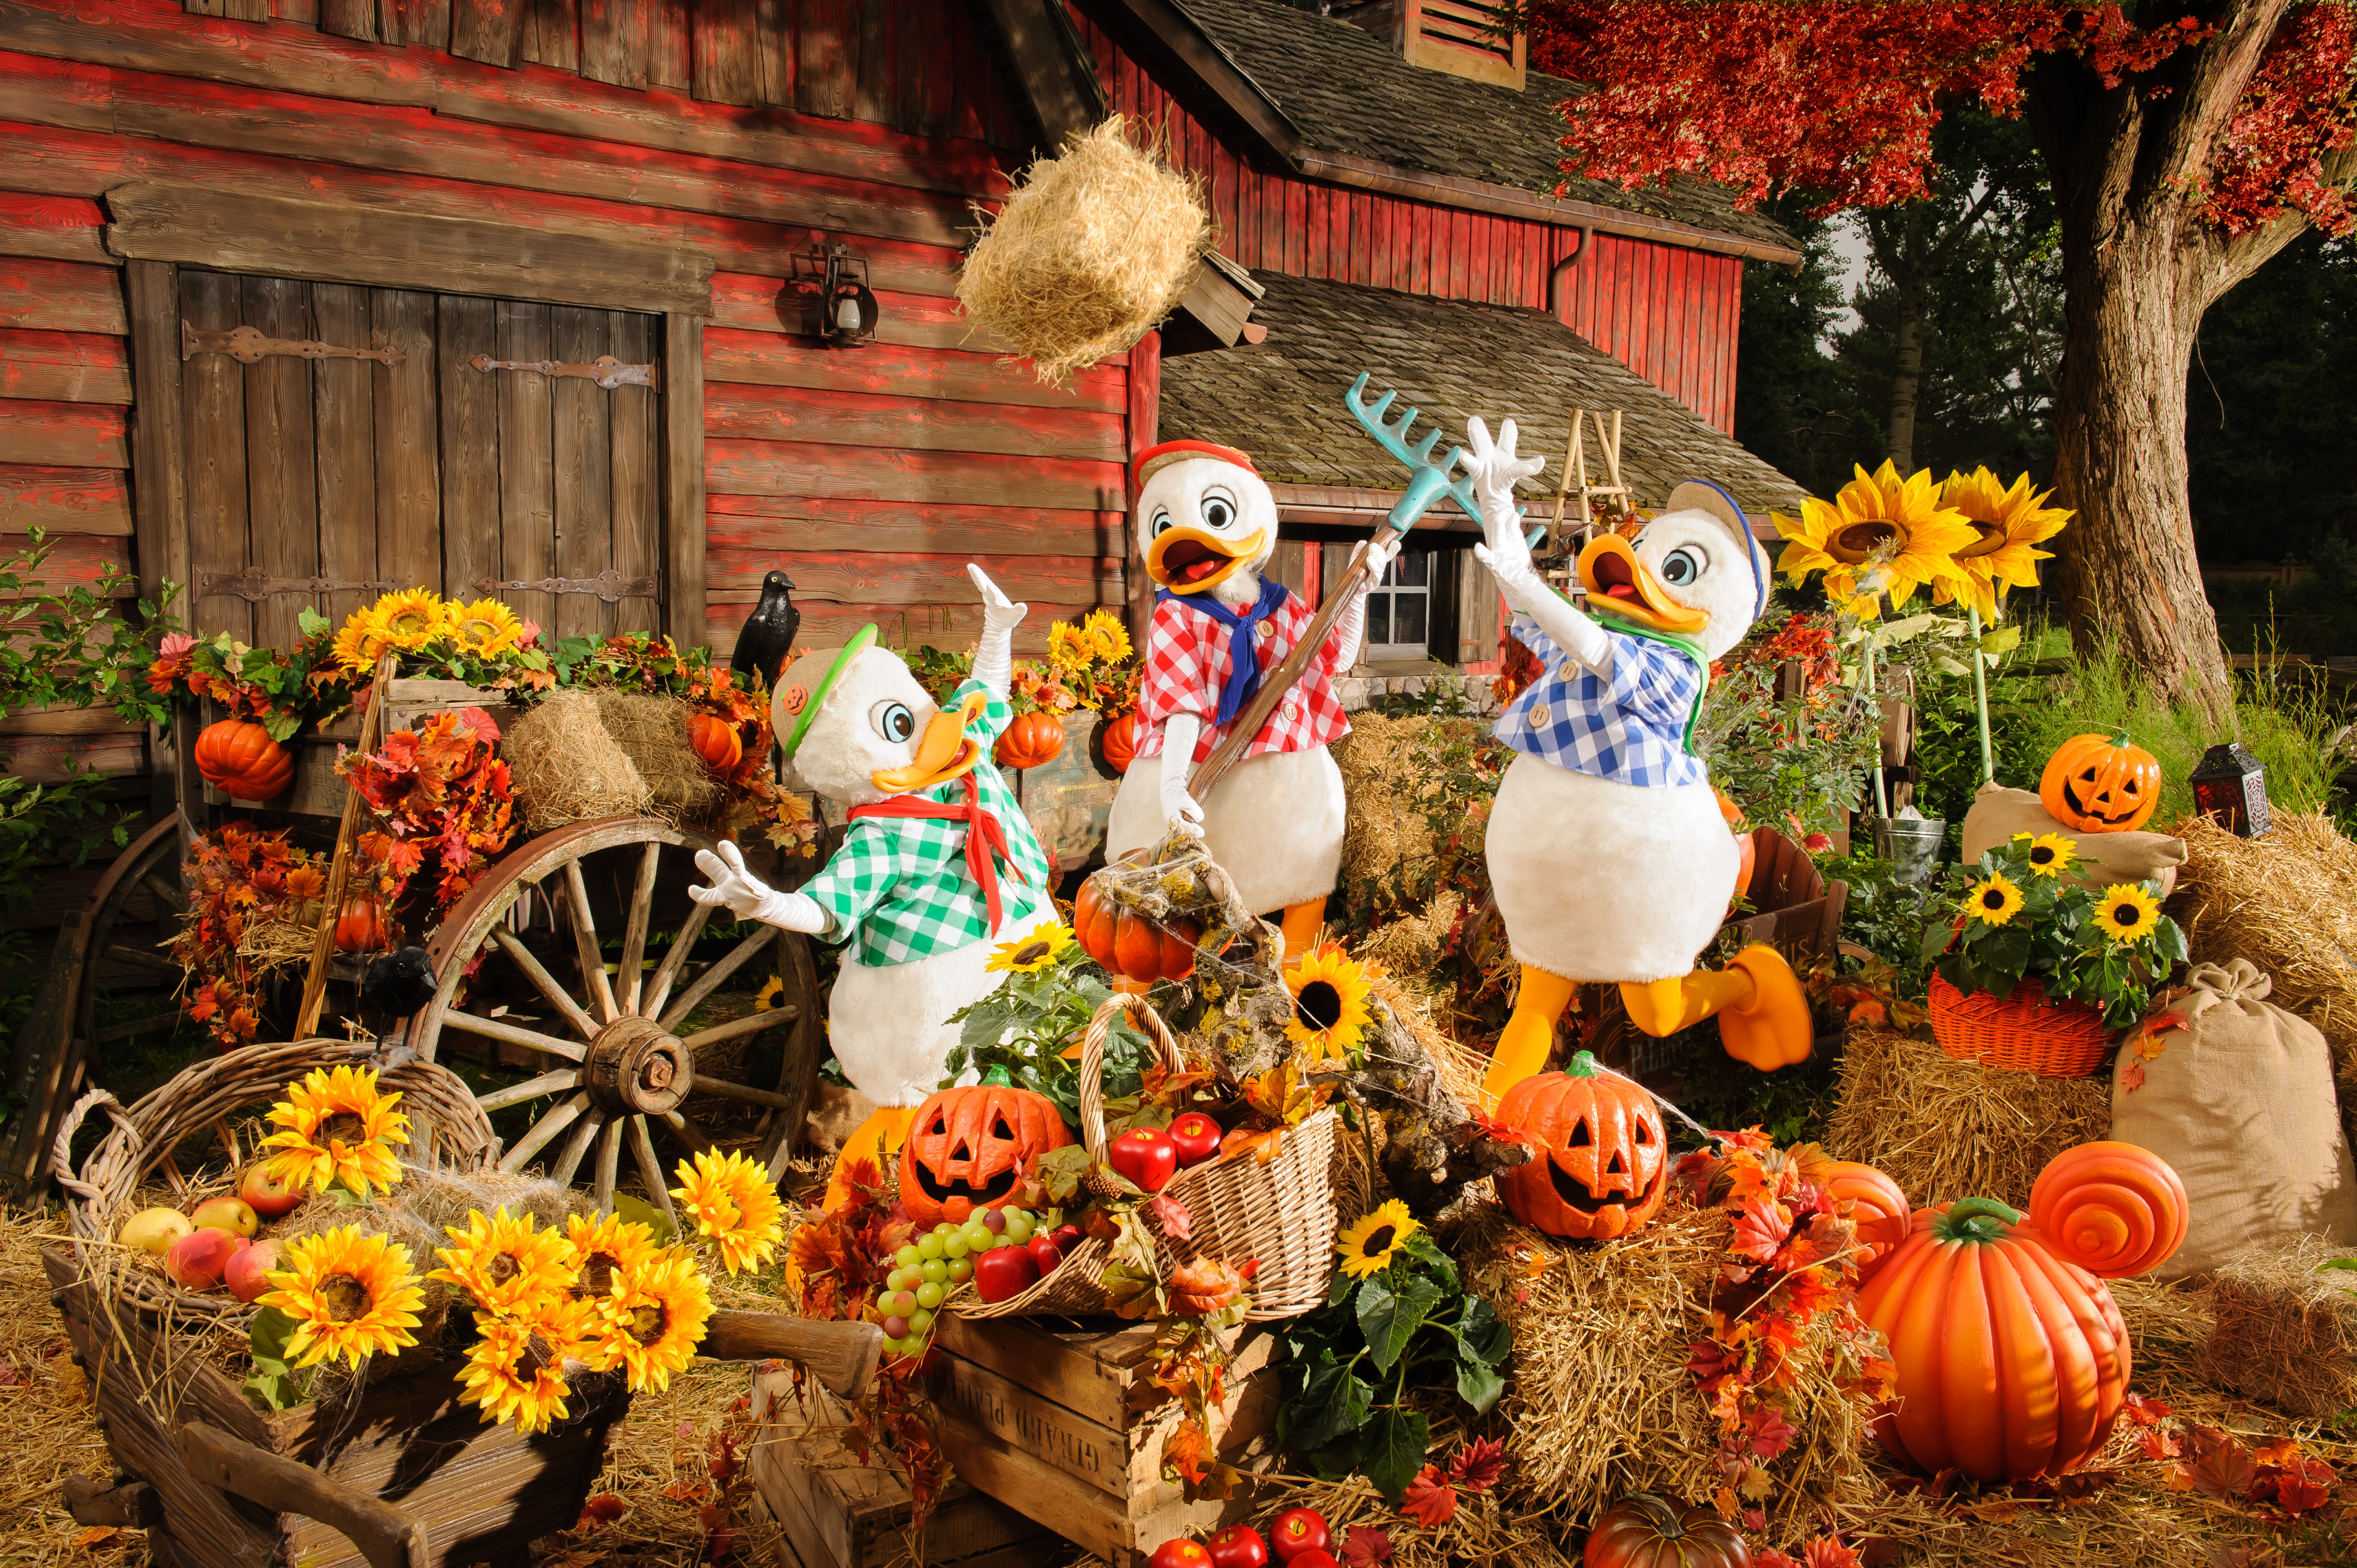 Hewey, Dewey and Louie in a Halloween setting dressed in a harvest attire